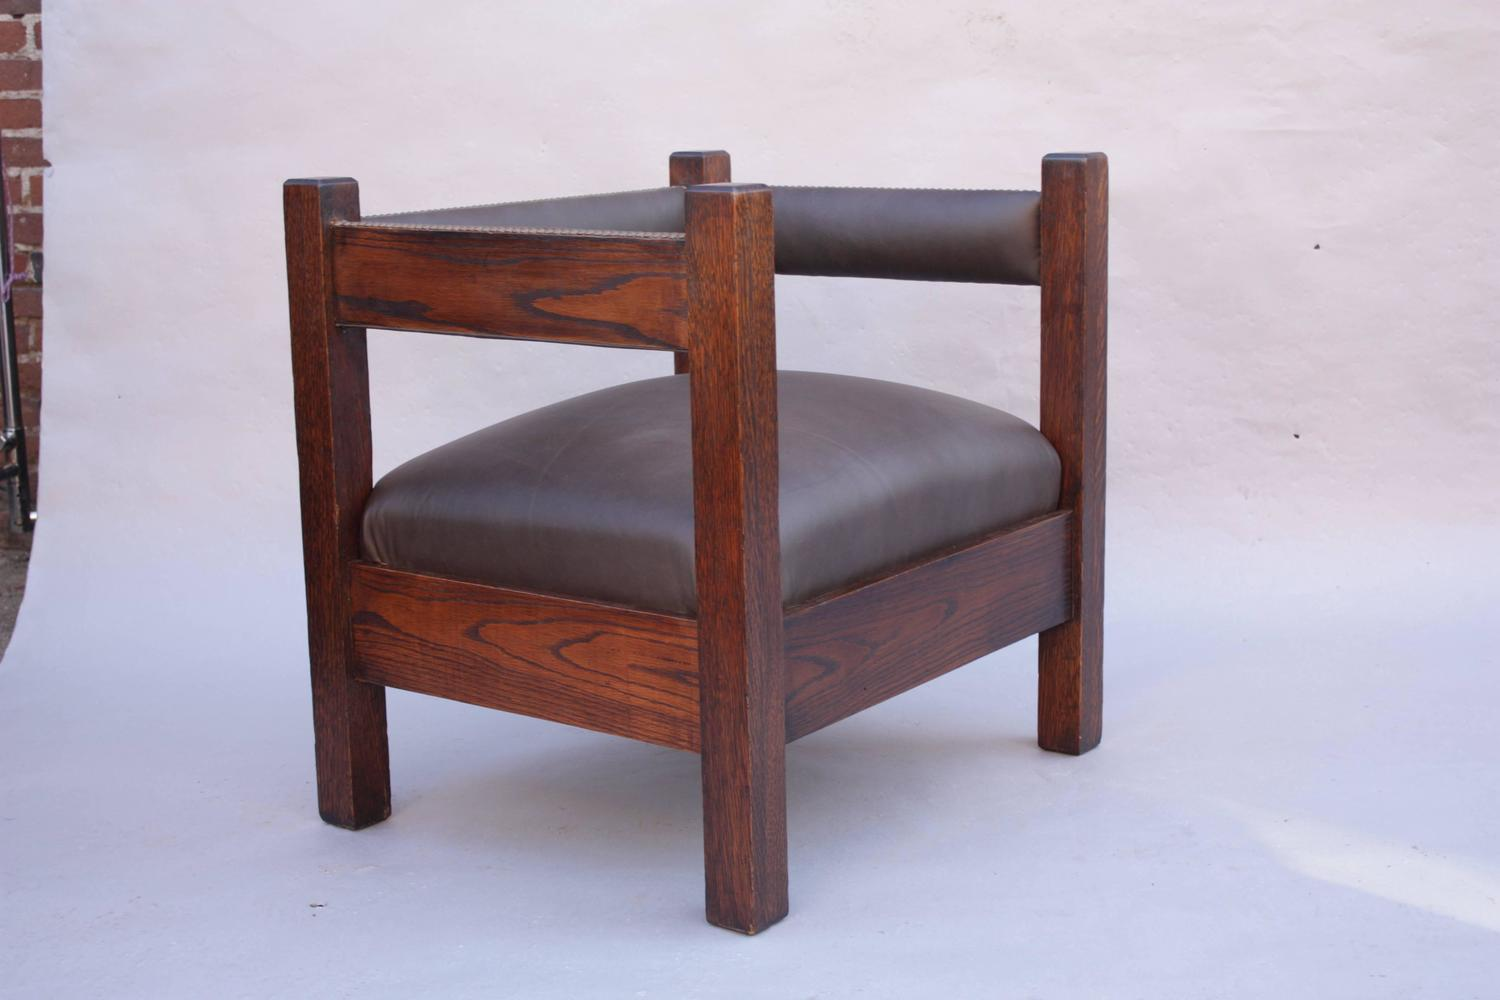 mission chairs for sale godrej revolving chair back pain antique arts and crafts cube at 1stdibs